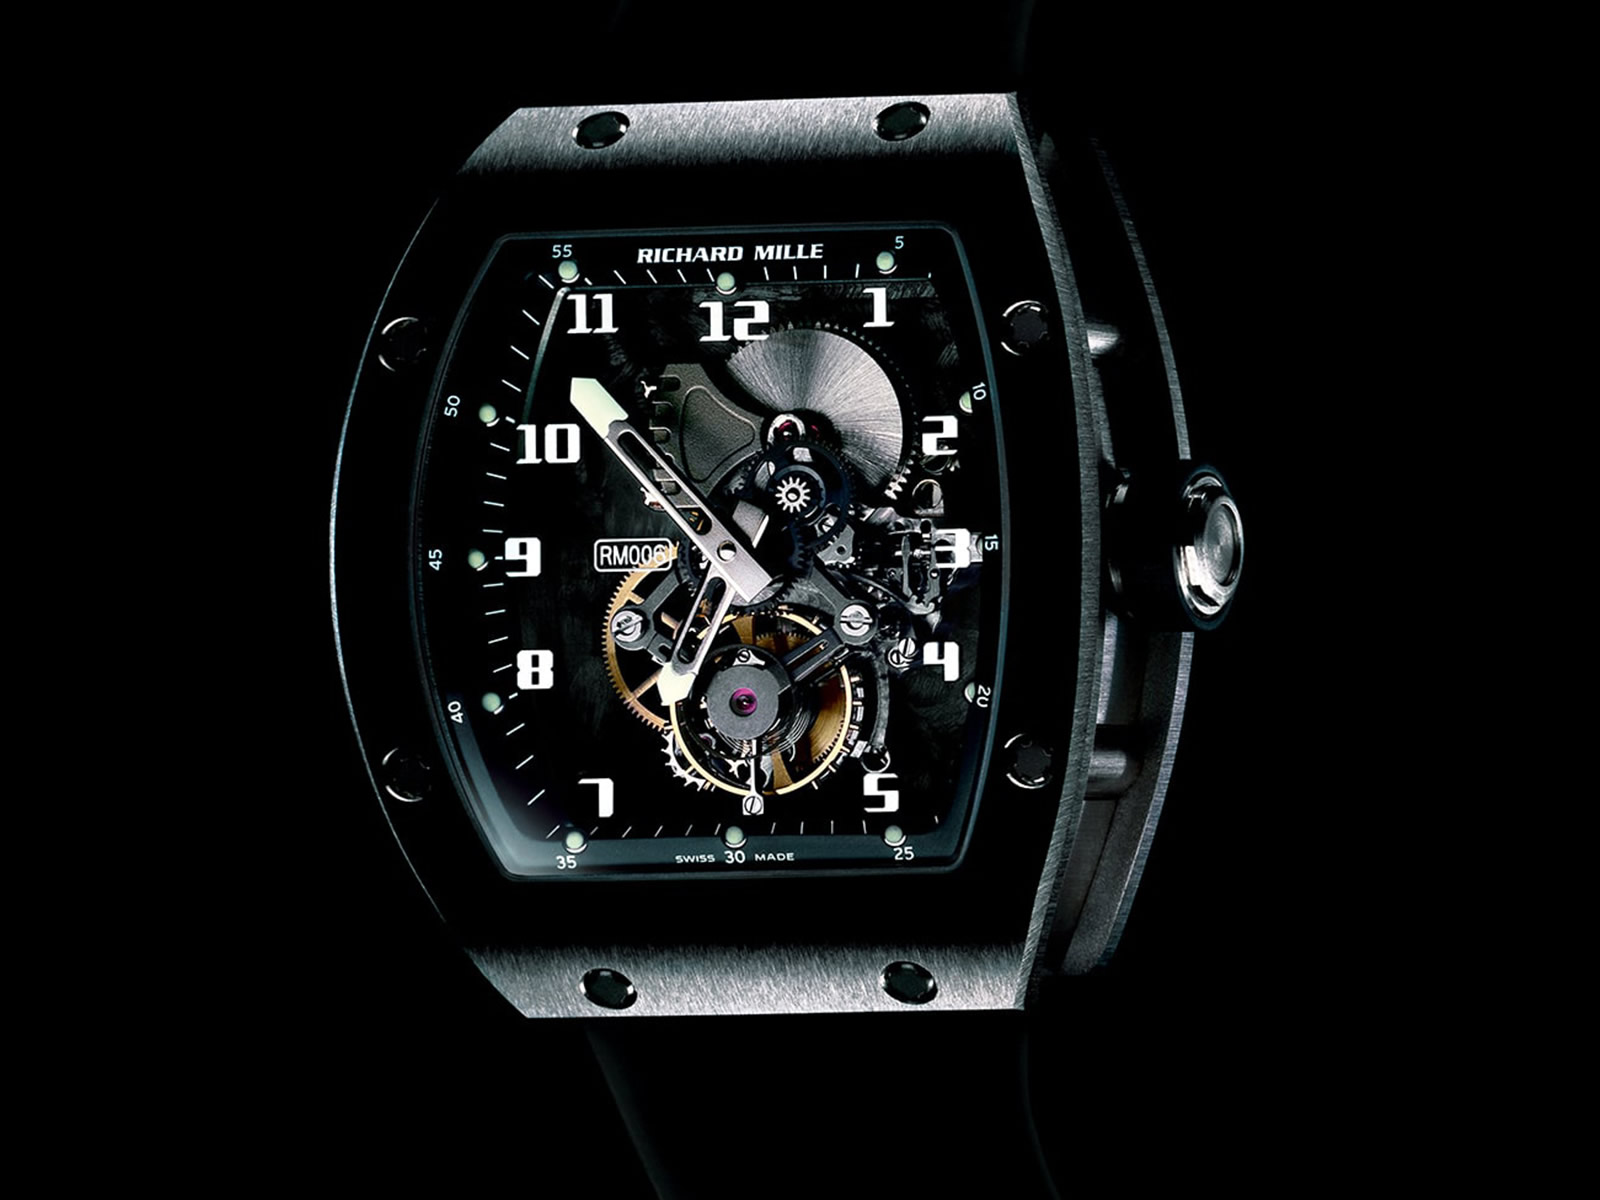 richard-mille-rm-006-tourbillon-felipe-massa-2-.jpg